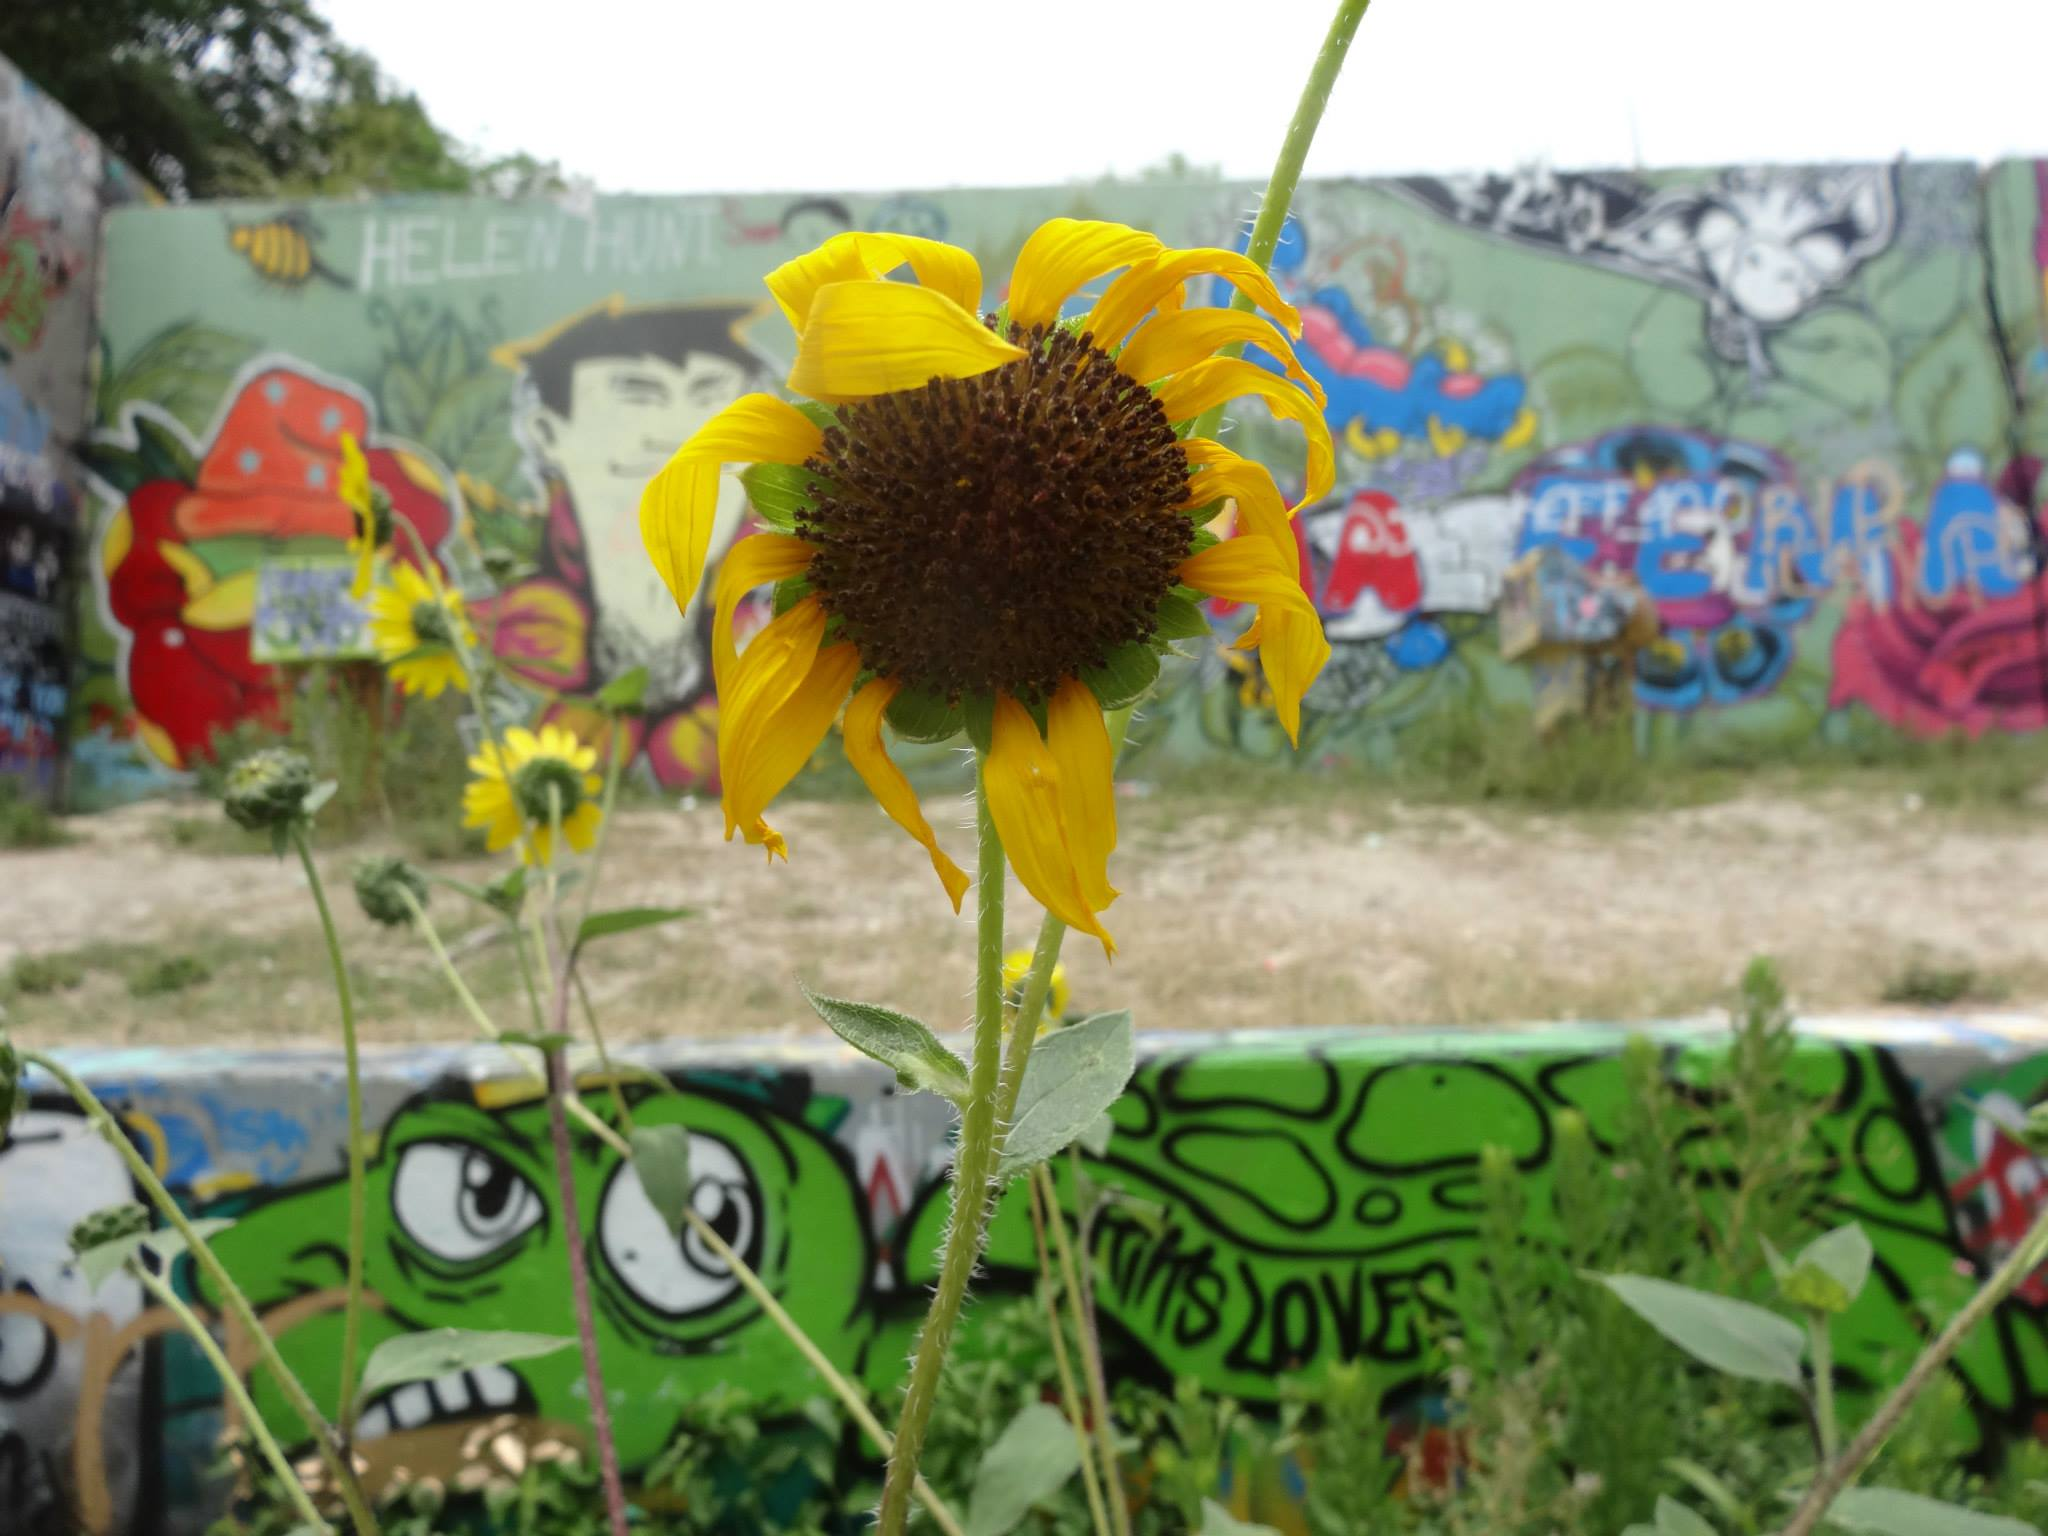 sunflower and graffiti art in Austin